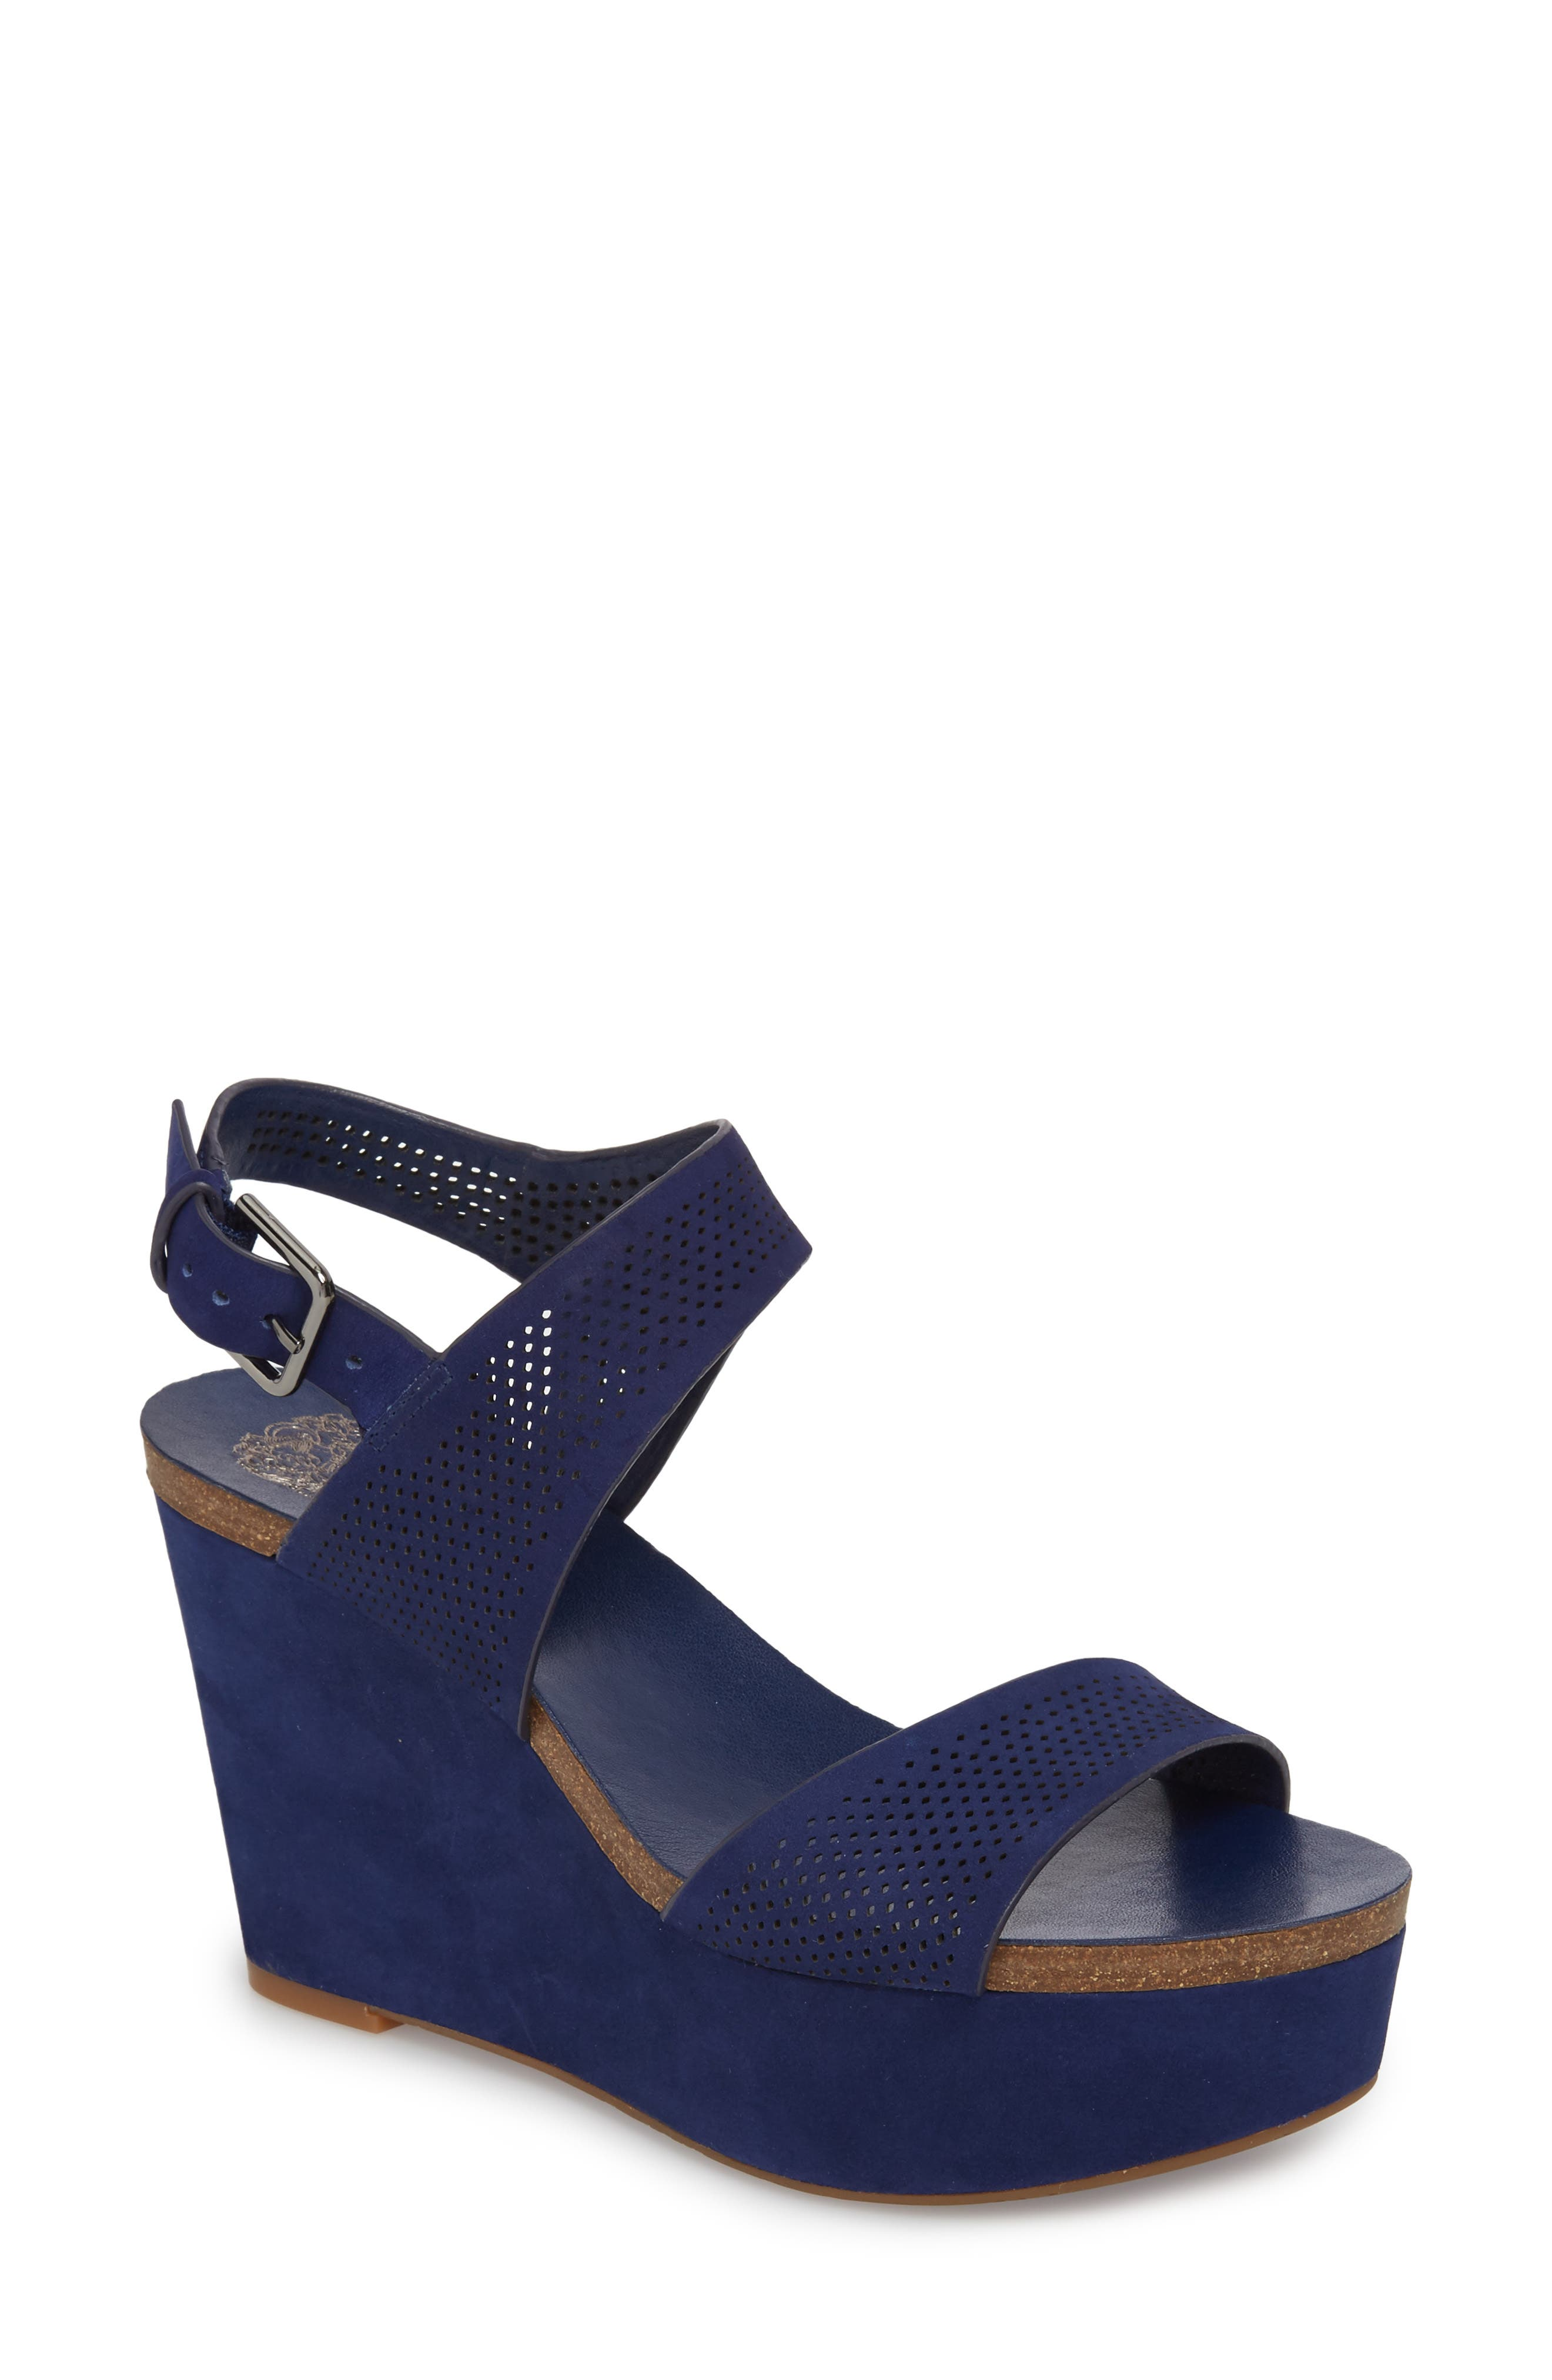 Vessinta Platform Wedge,                             Main thumbnail 1, color,                             Moody Blue Leather